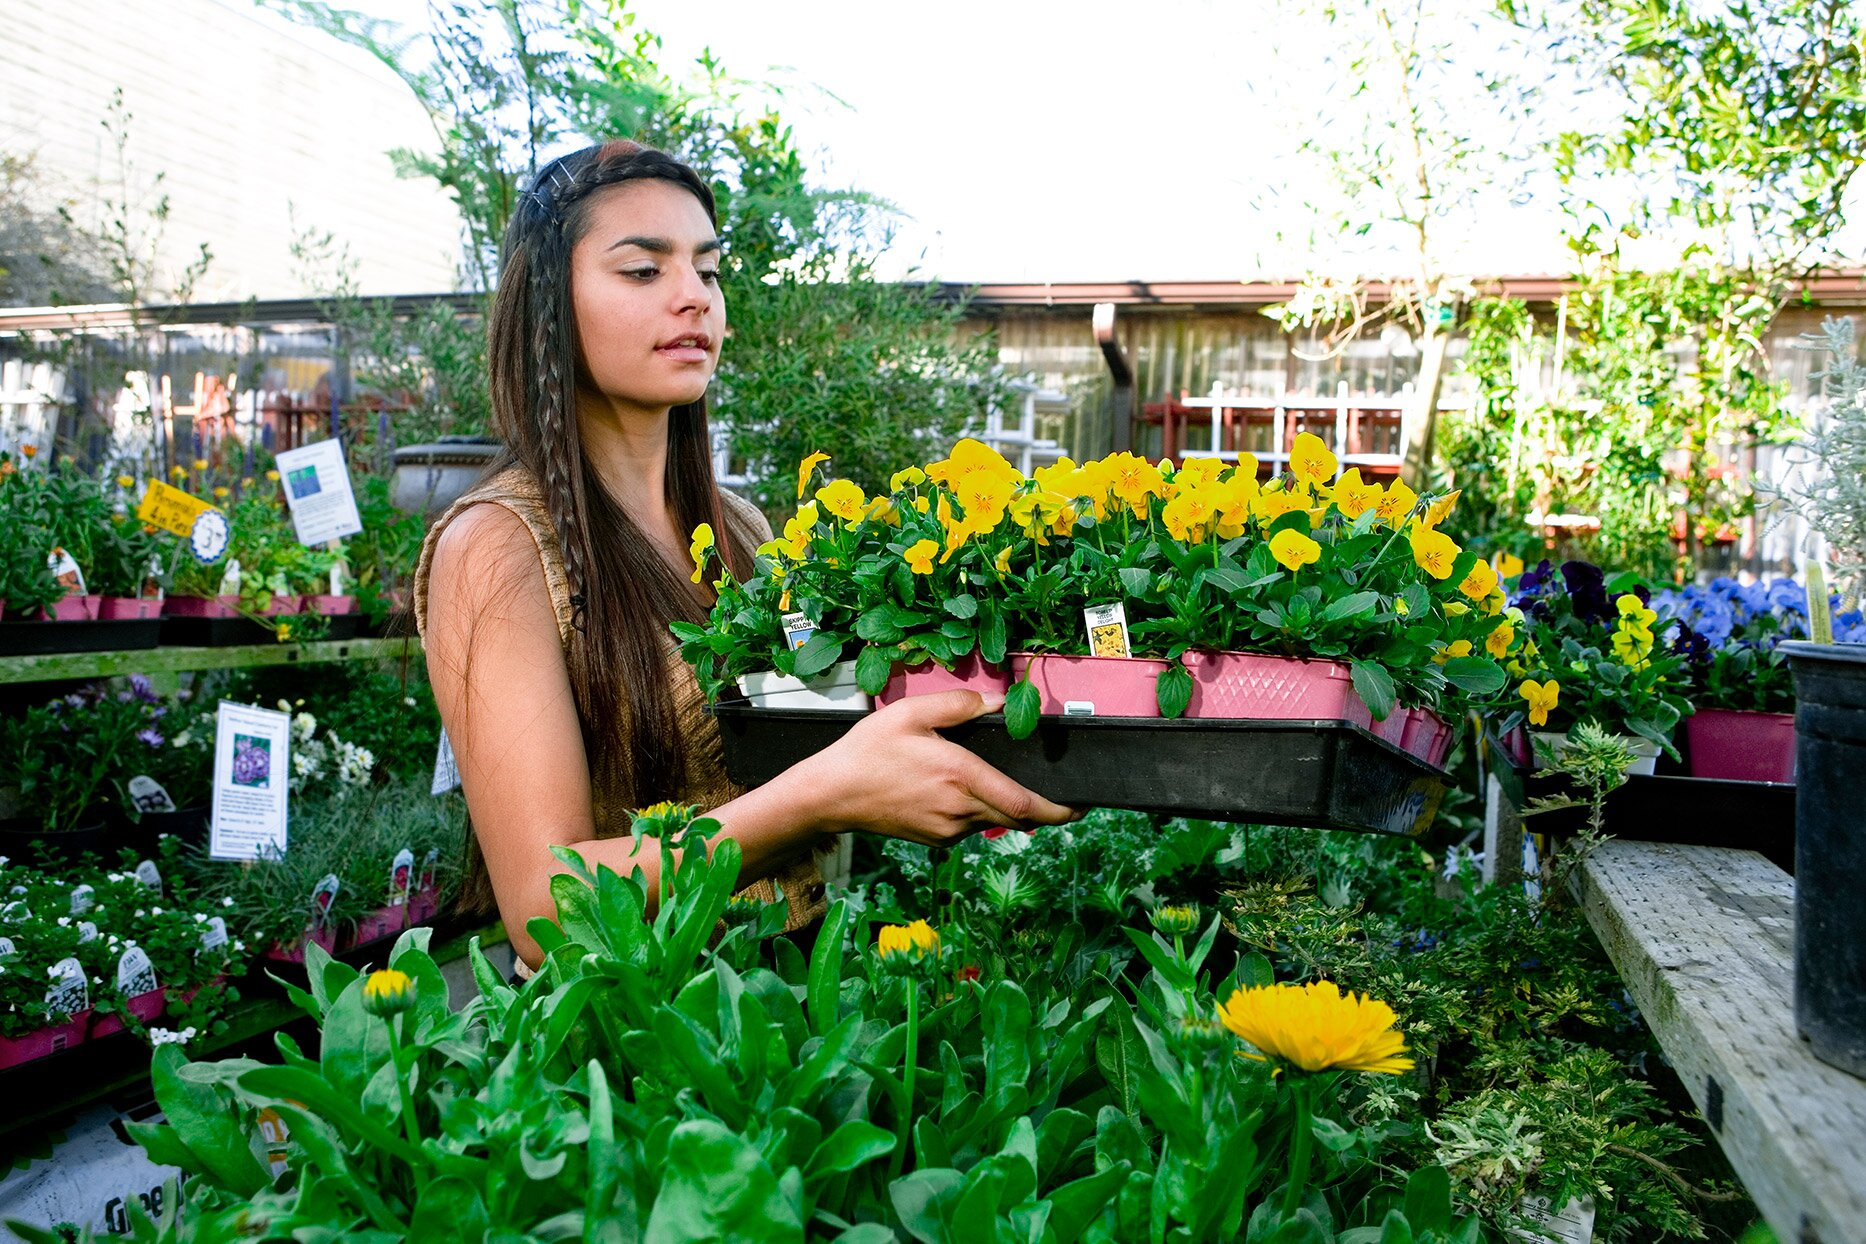 person holding a tray of flowers at a garden center